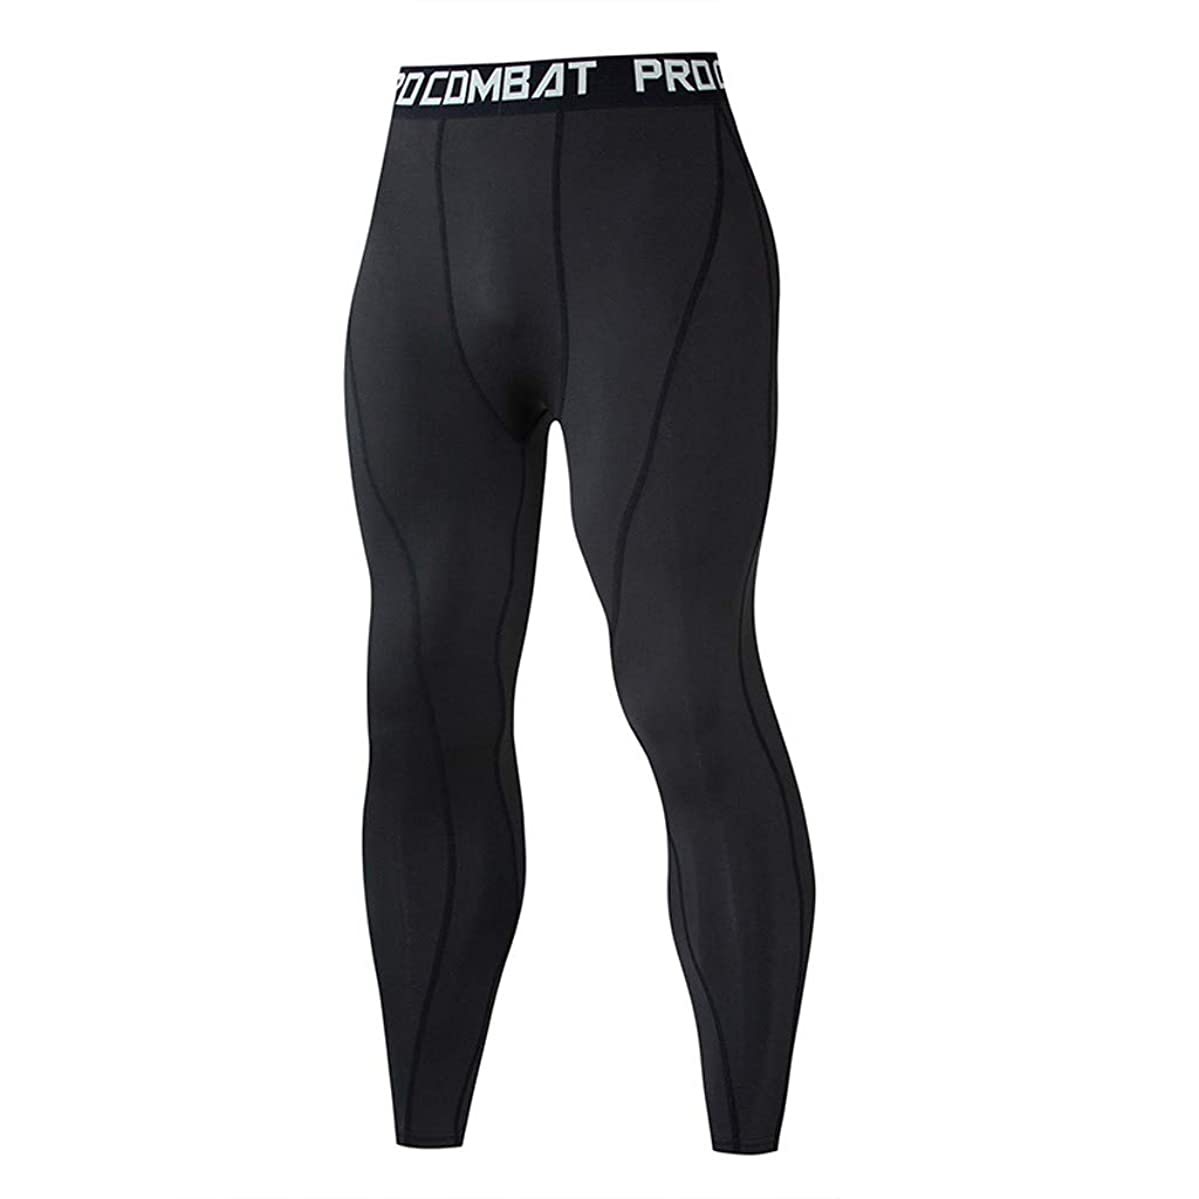 Men's Casual Fitness Pants Athletic Workout Training Sweat Elastic Fast Drying Elastic Sports Long Pants Size S-3XL